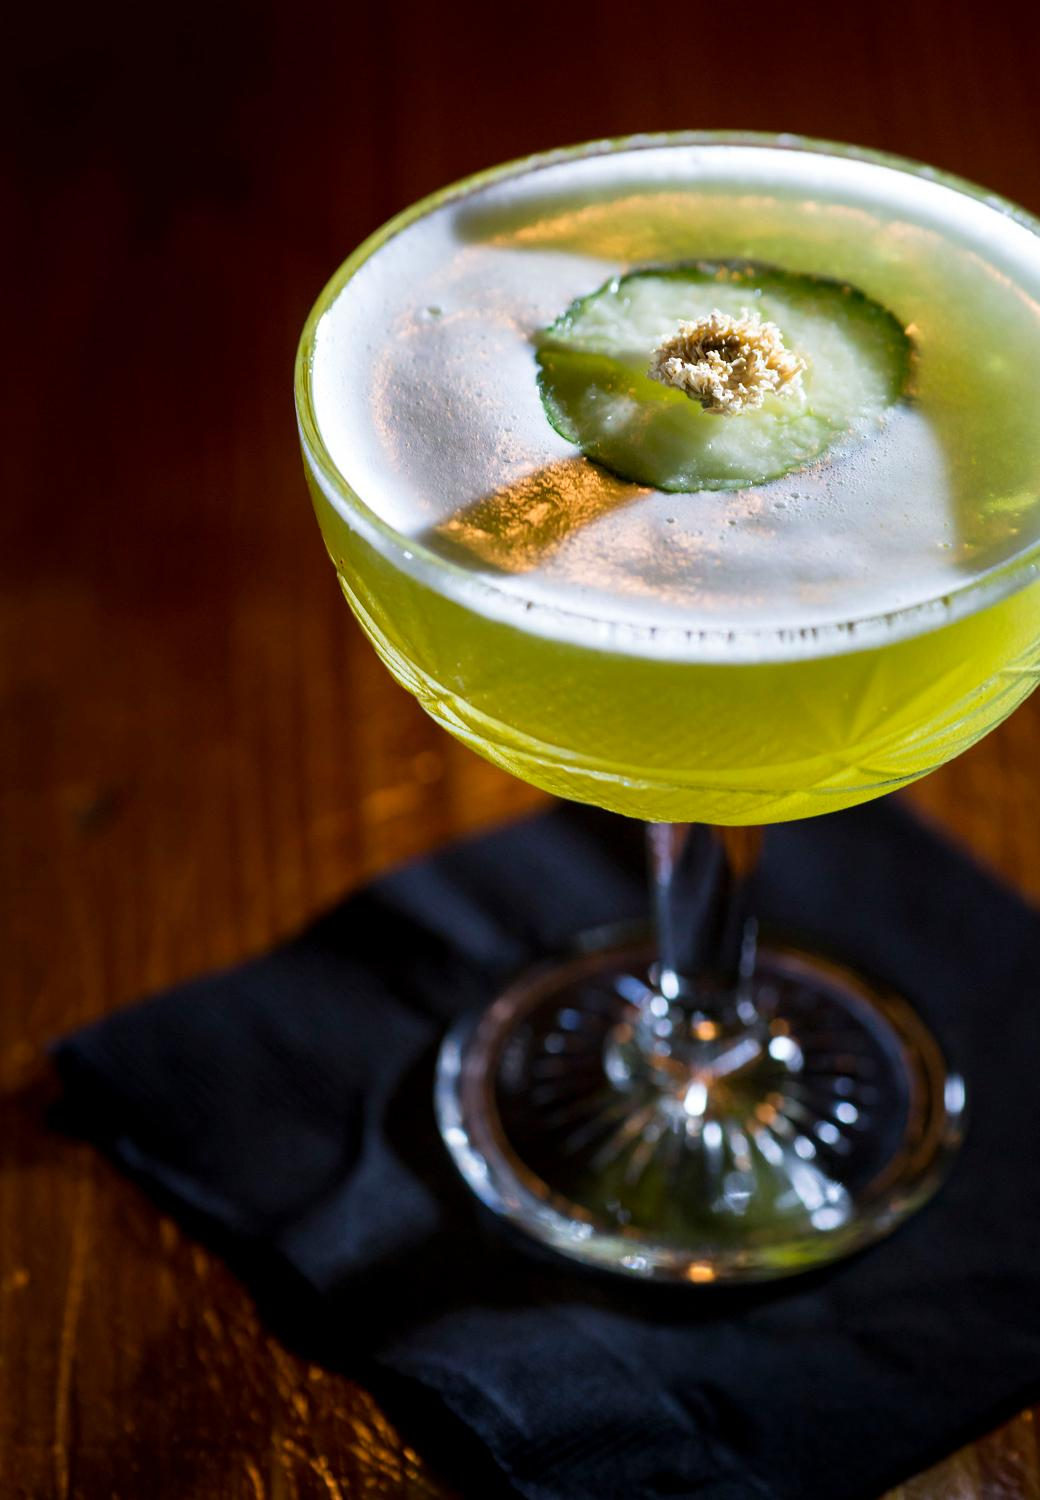 """Ze Lilypad"" - Vodka, green chartreuse, house kiwi syrup, house grapefruit shrub. Garnish is a dried Chrysanthamum flower atop a cucumber to have the look of a Lilypad. (Sy Bean / Seattle Refined)"